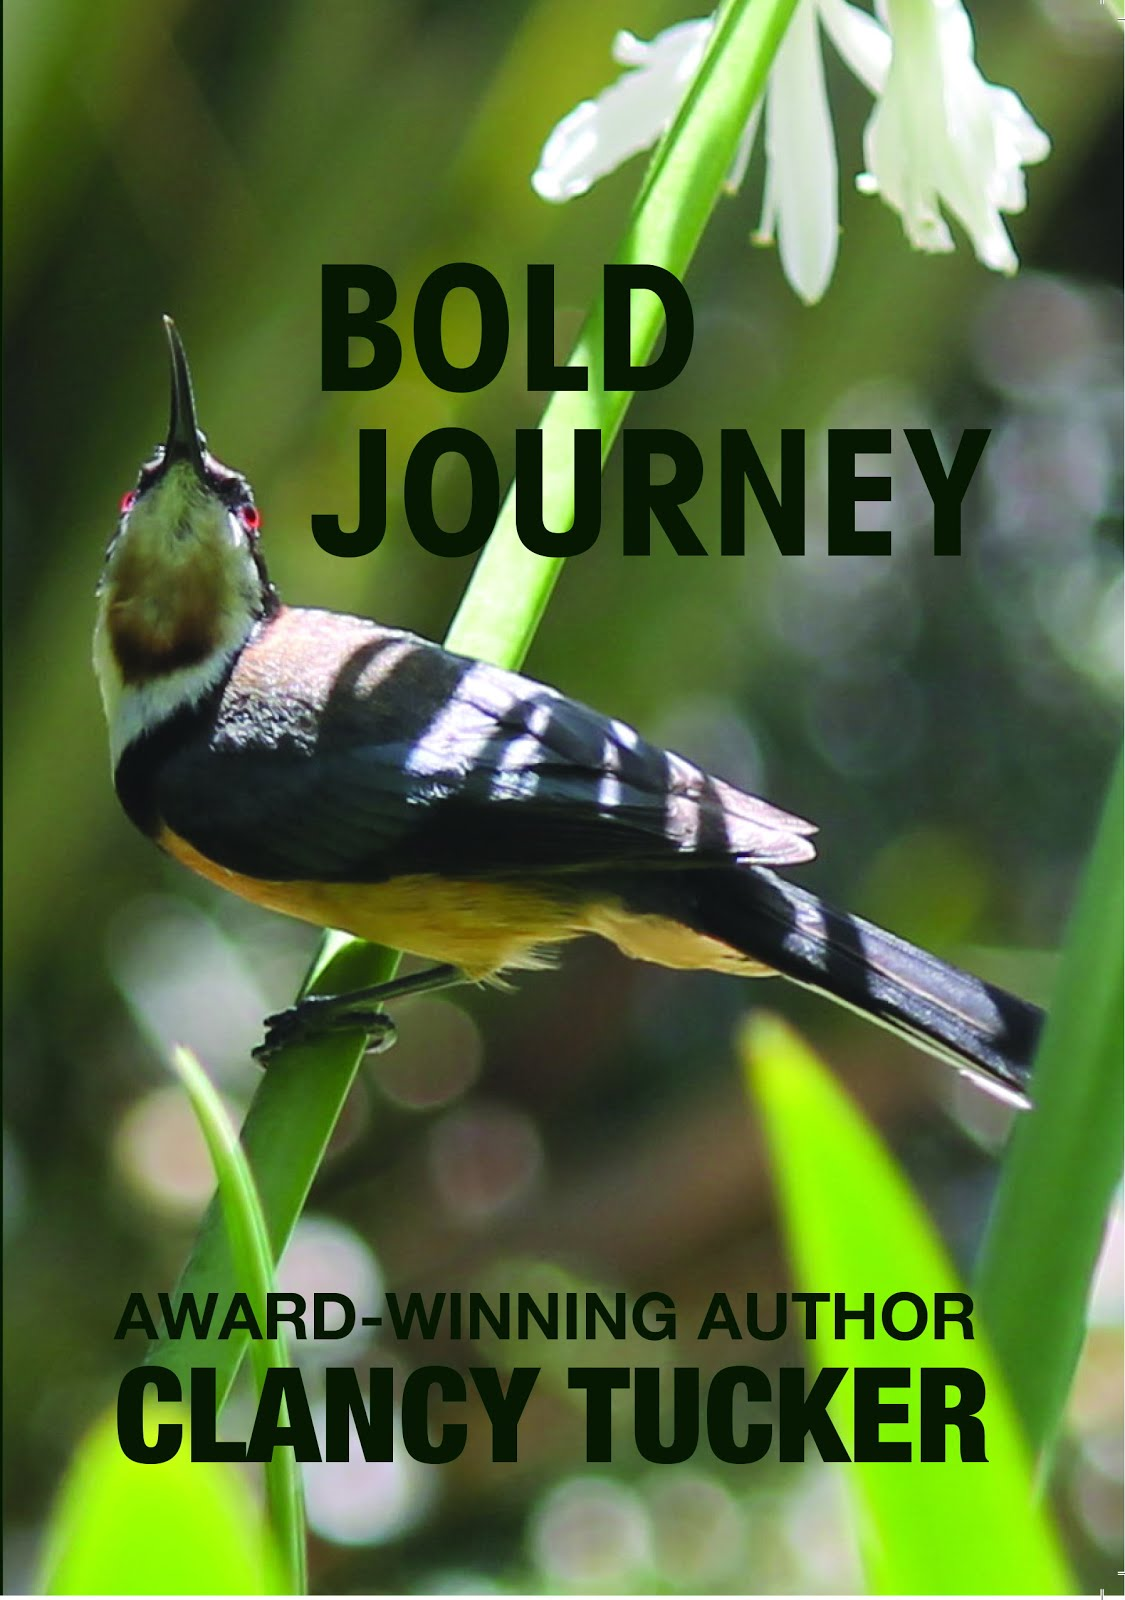 'BOLD JOURNEY' PAPERBACK IN AUSTRALIA